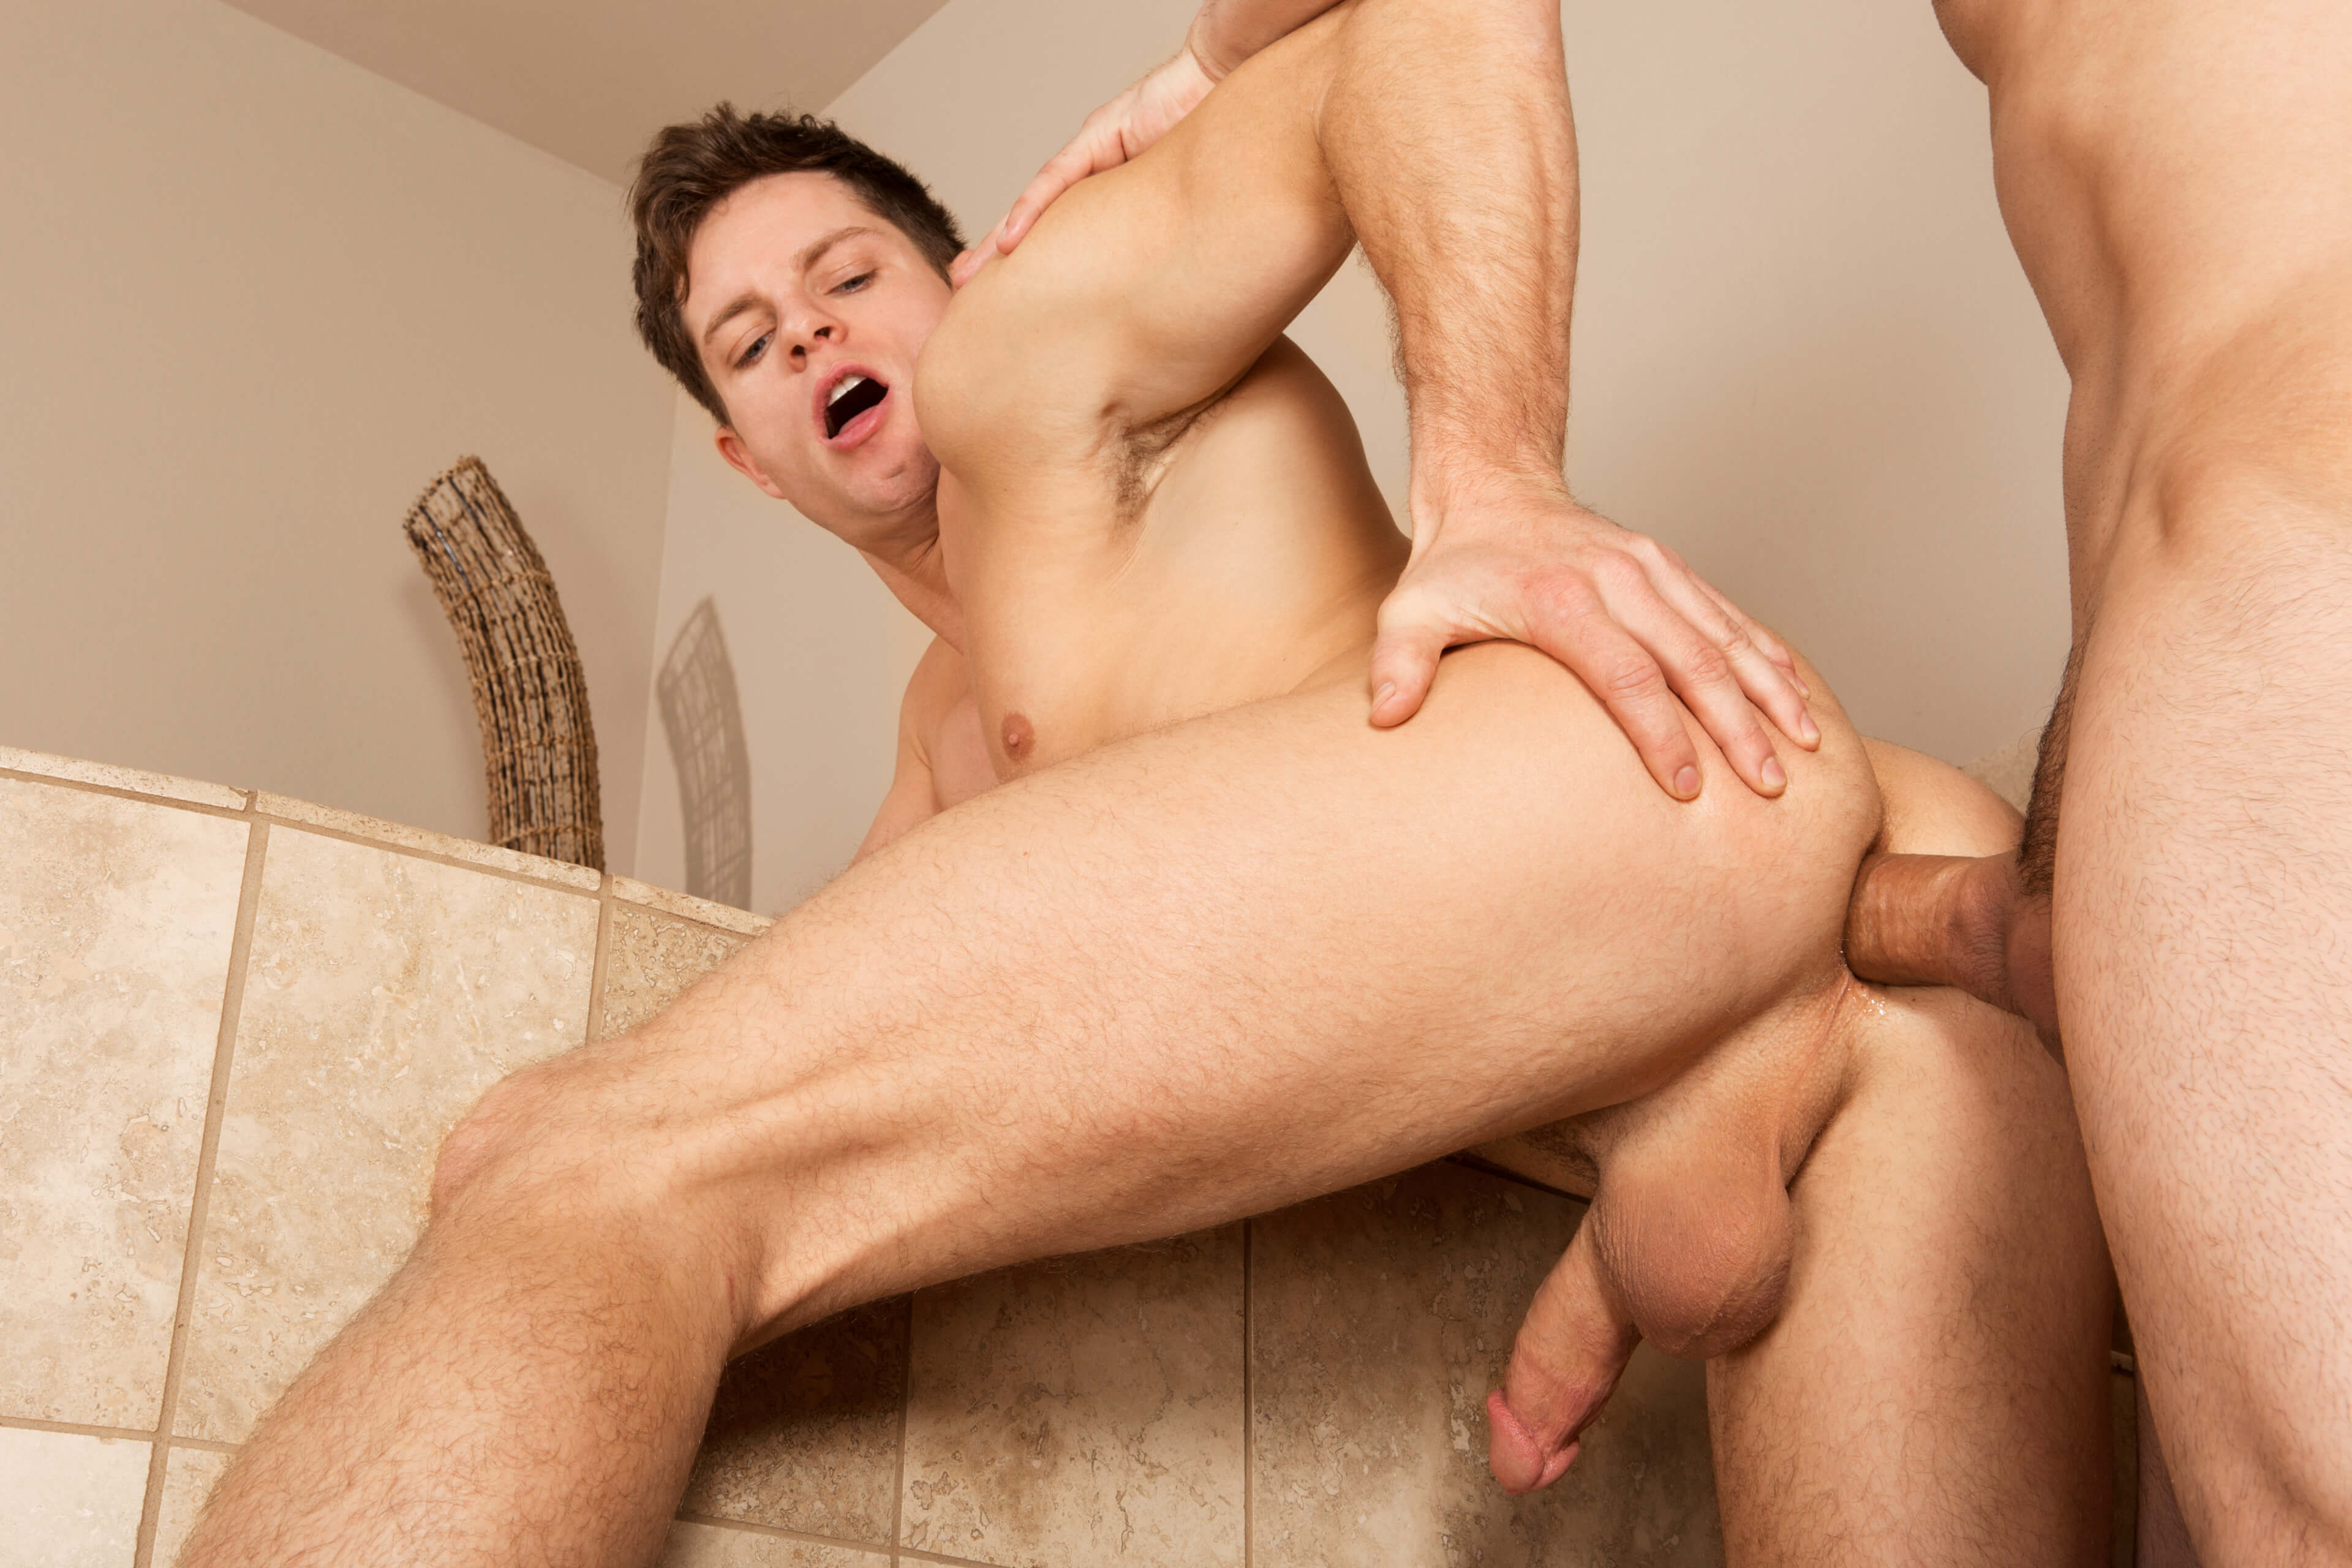 Gay bareback blogs